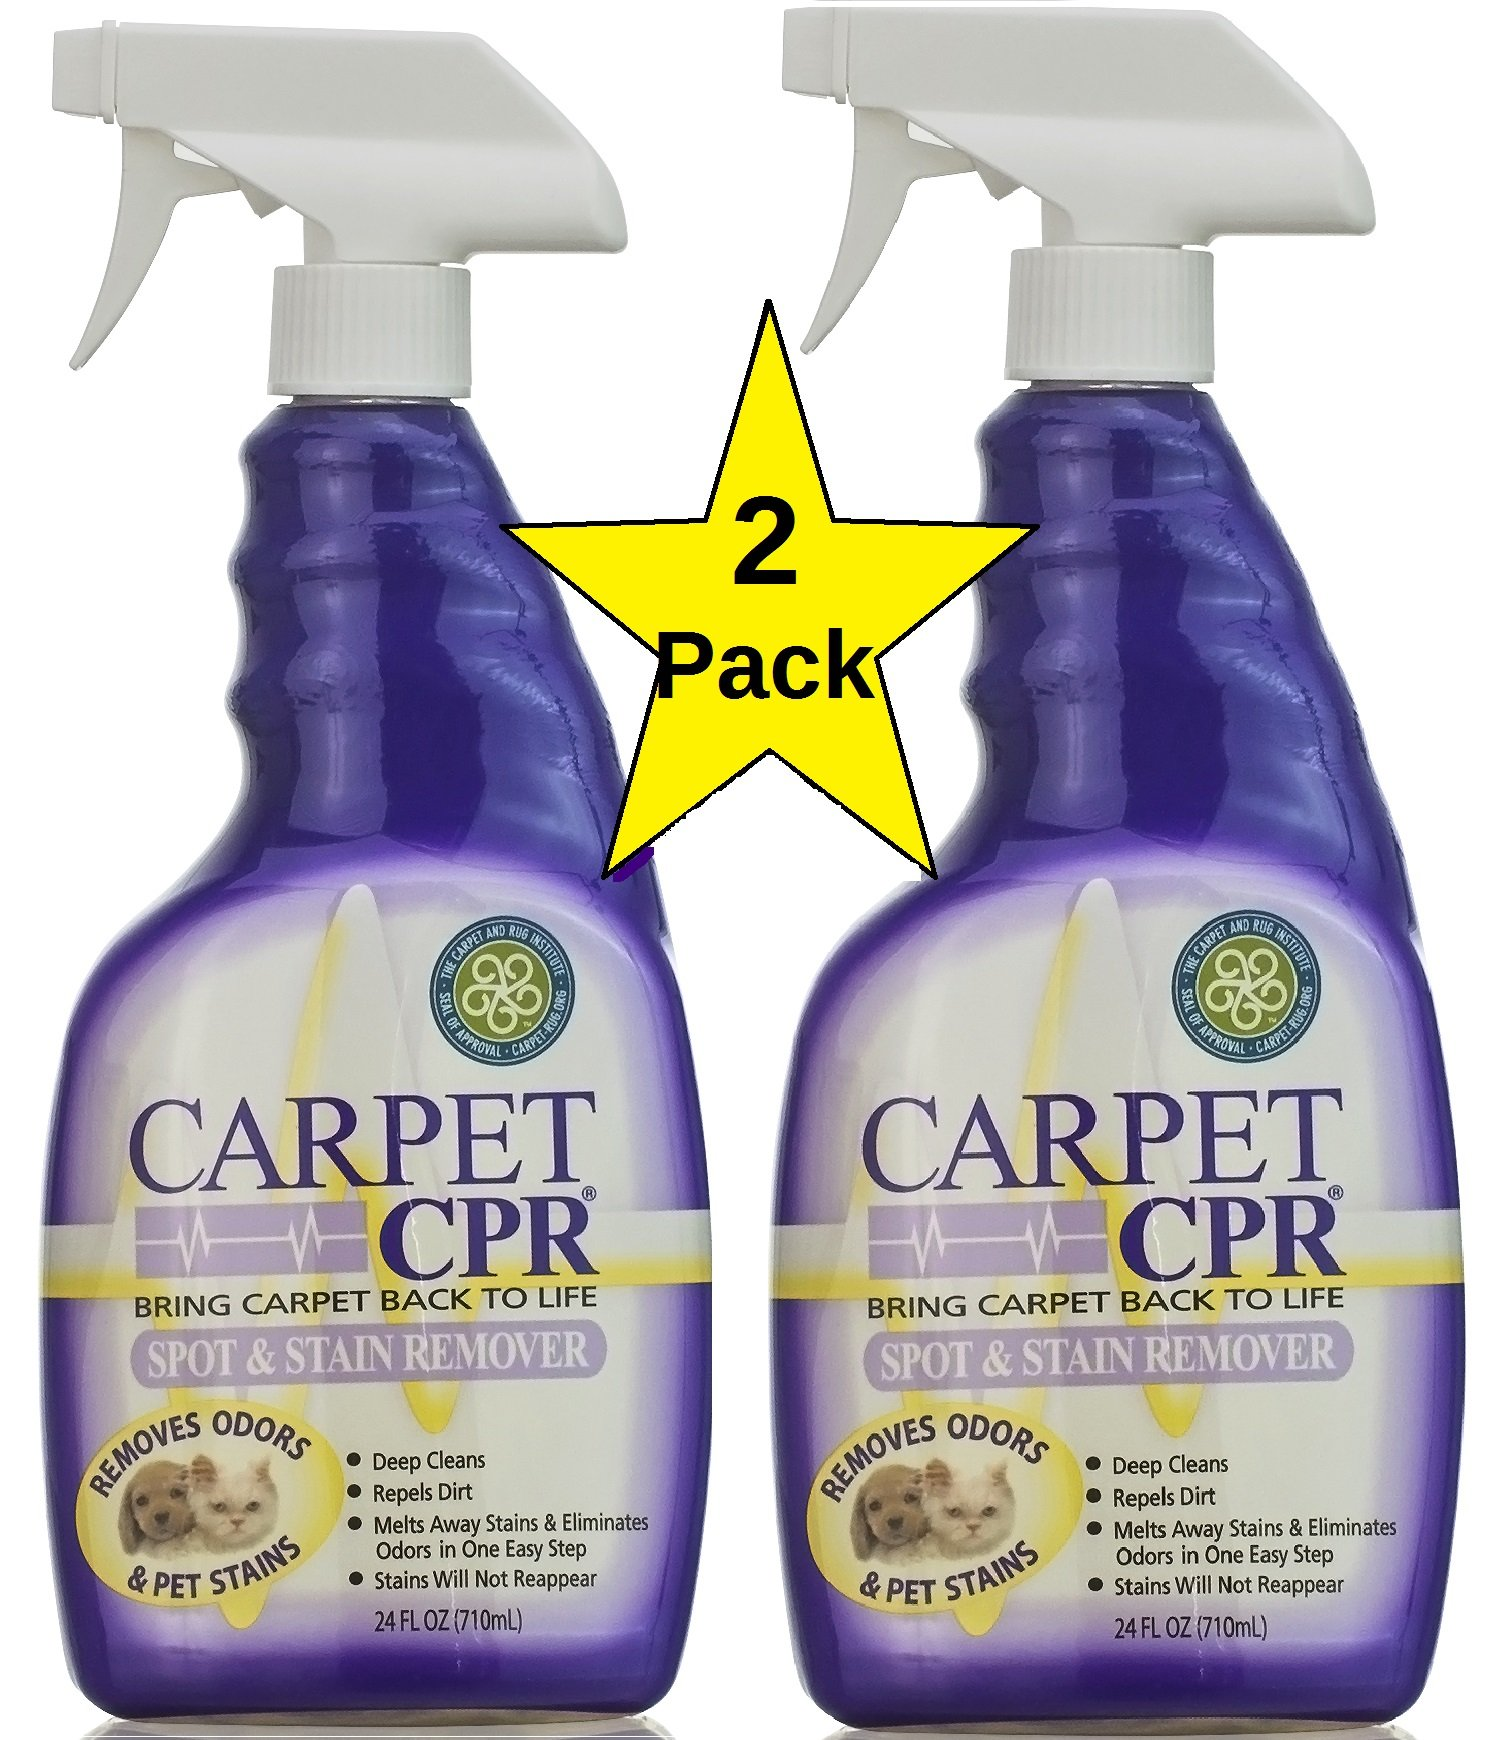 Carpet CPR Spot & Stain Remover 24oz (2)